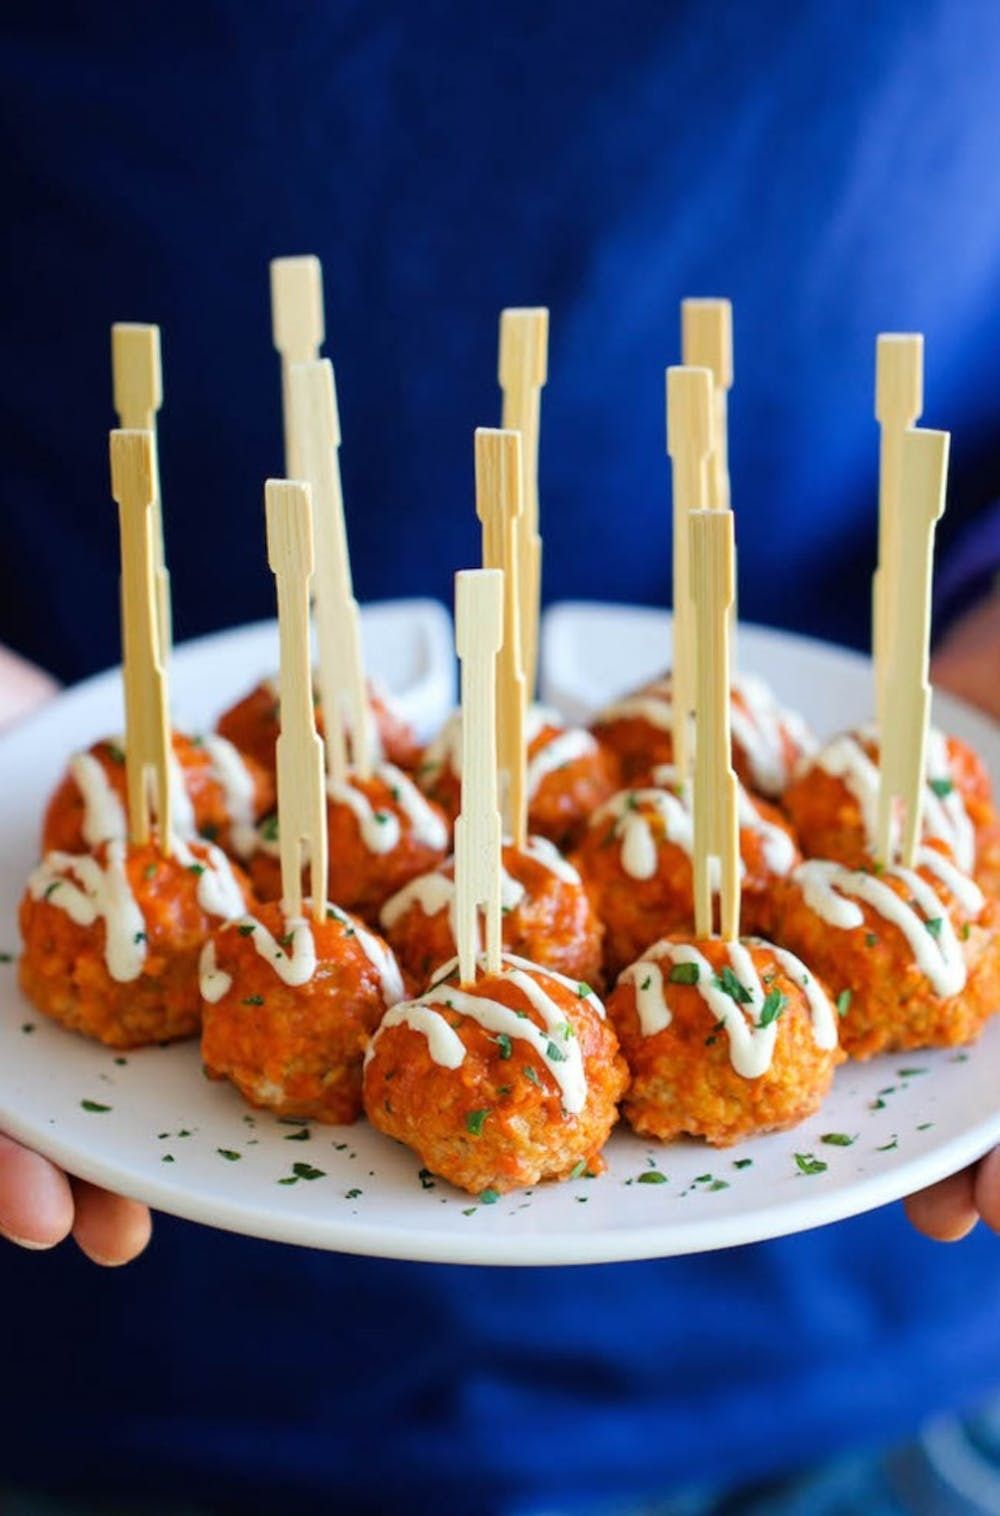 Heavy Appetizer Menu / Catering Menus Savannah Event Catering : Immigrating here at 9 yrs old ...